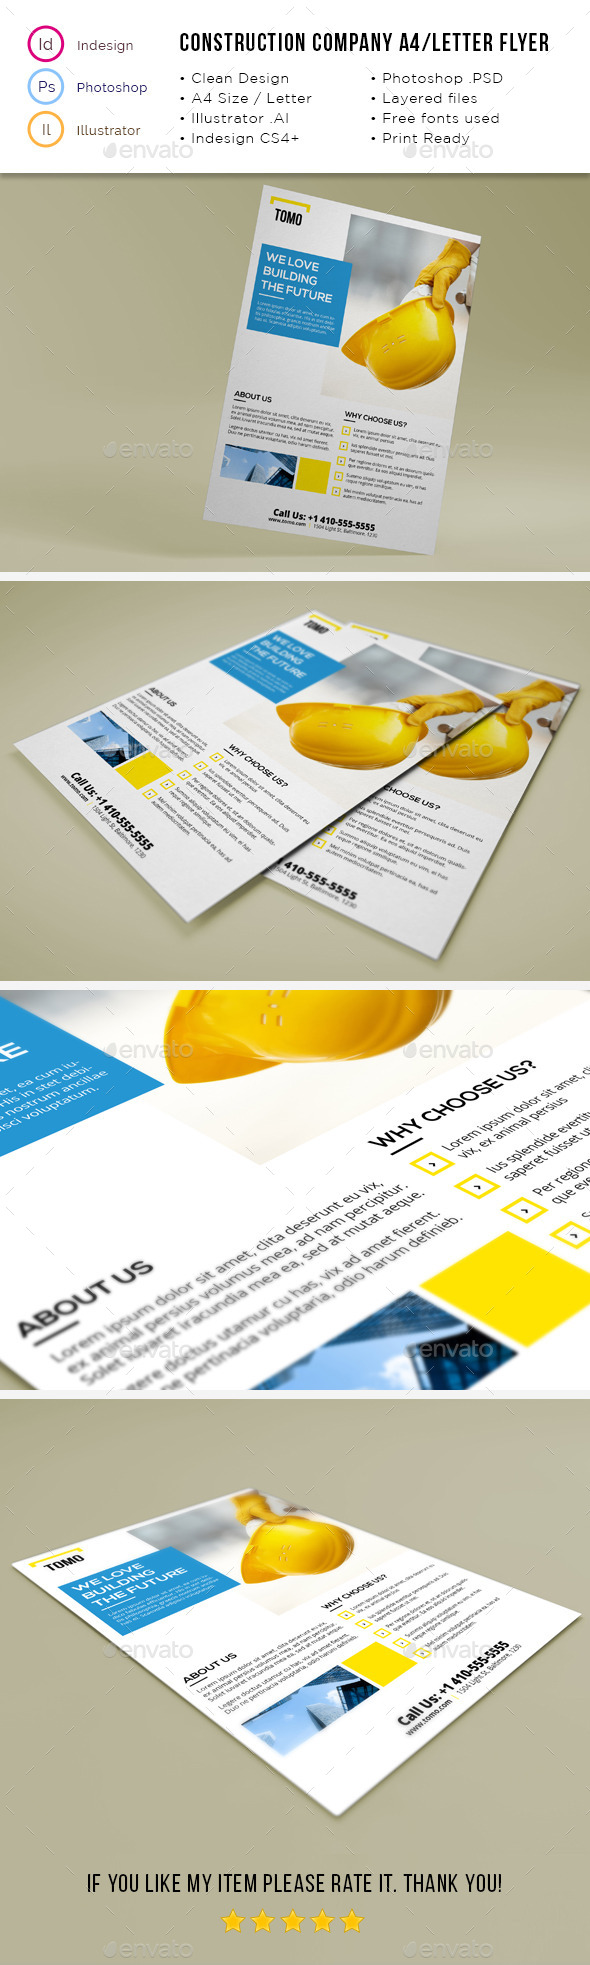 GraphicRiver Construction Company A4 Letter Flyer 02 11826733